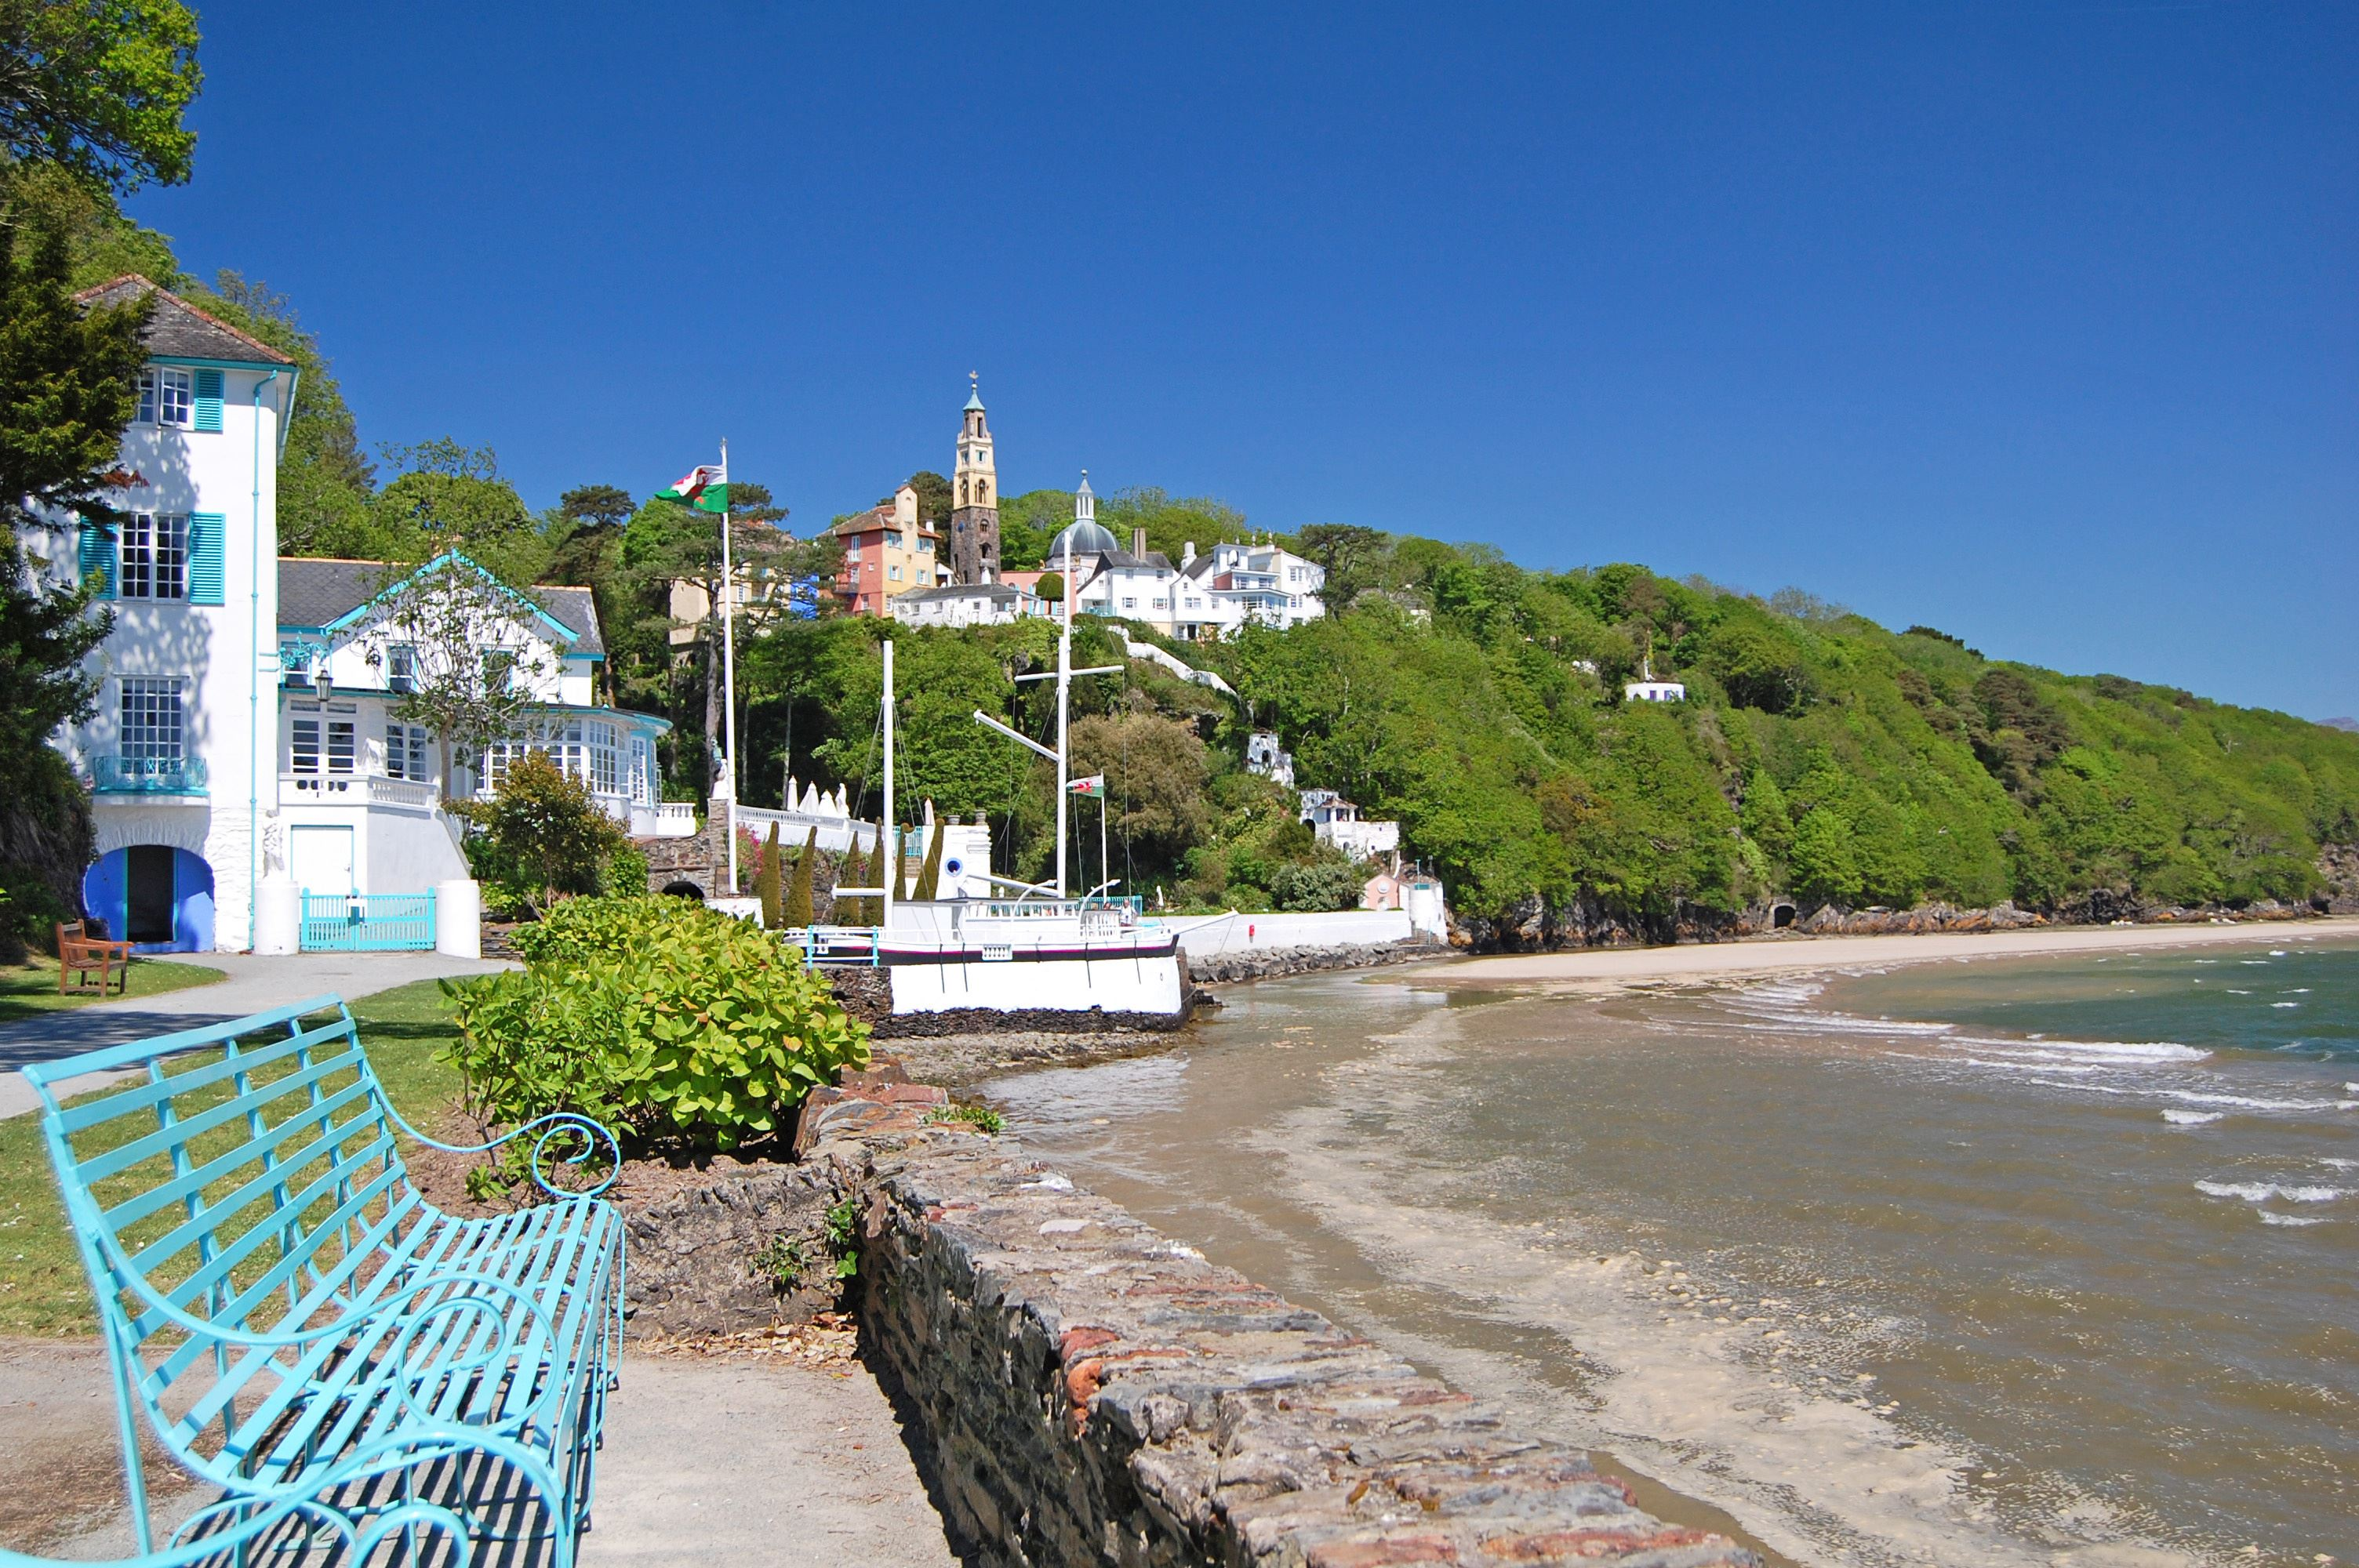 The coast path leading into Portmeirion